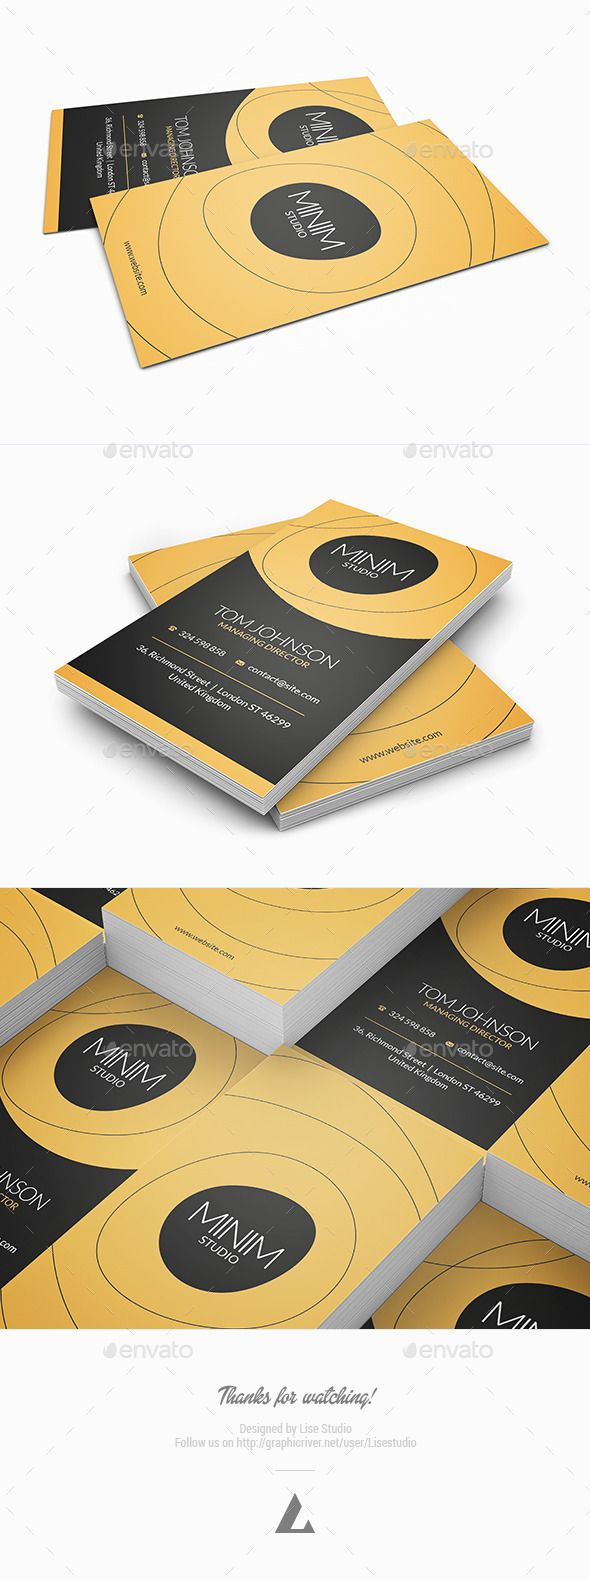 14 best Business Cards images on Pinterest | Business cards, Carte ...